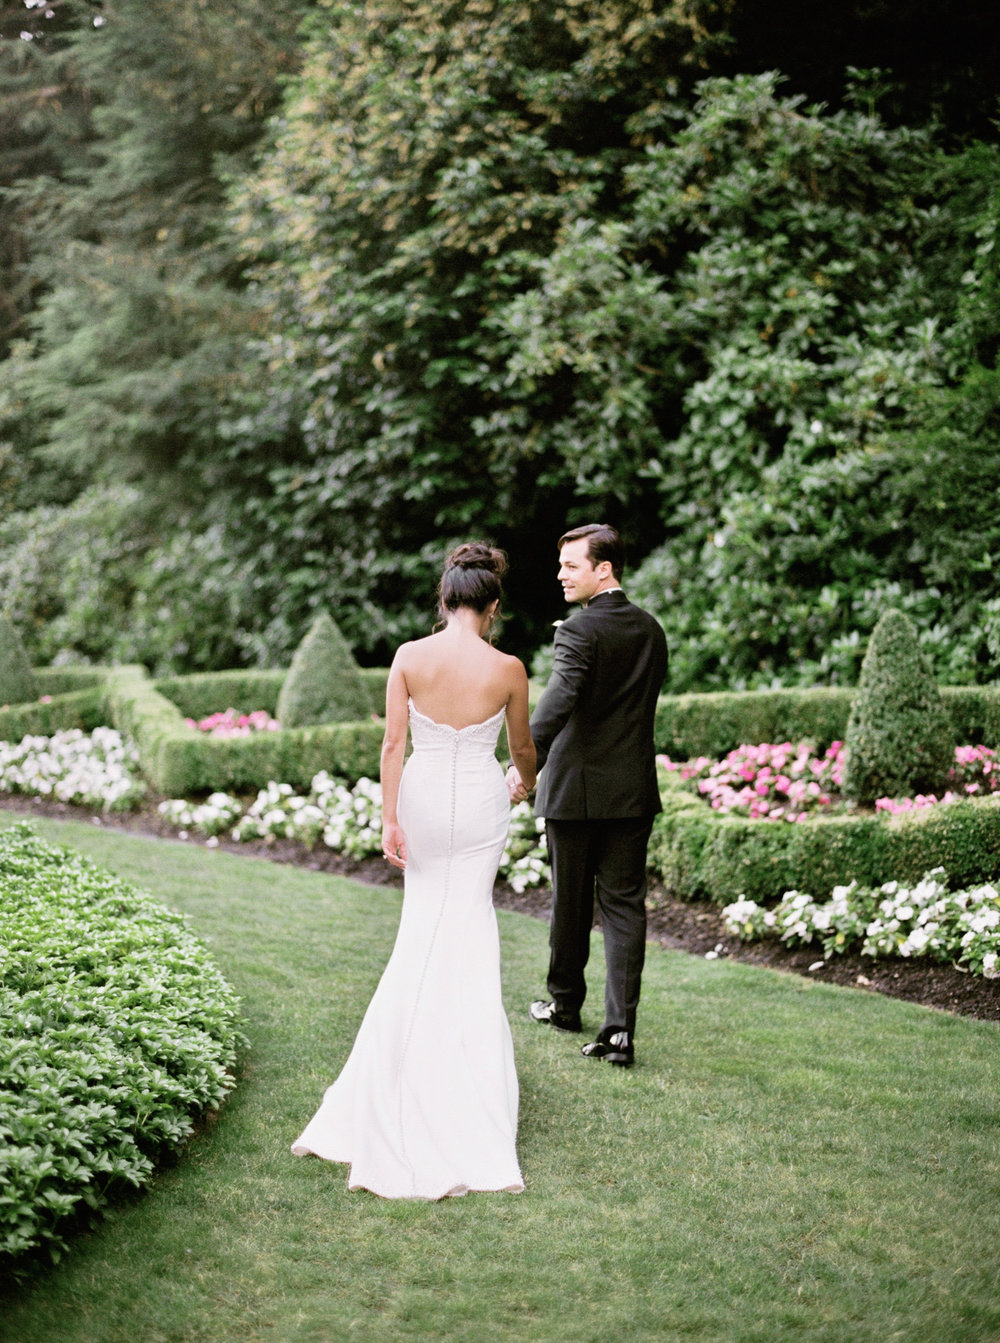 104OutliveCreative_Travel_Photographer_Videographer_Lewis&Clark_Oregon_Elegant_BlackTie_Destination_Wedding.jpg